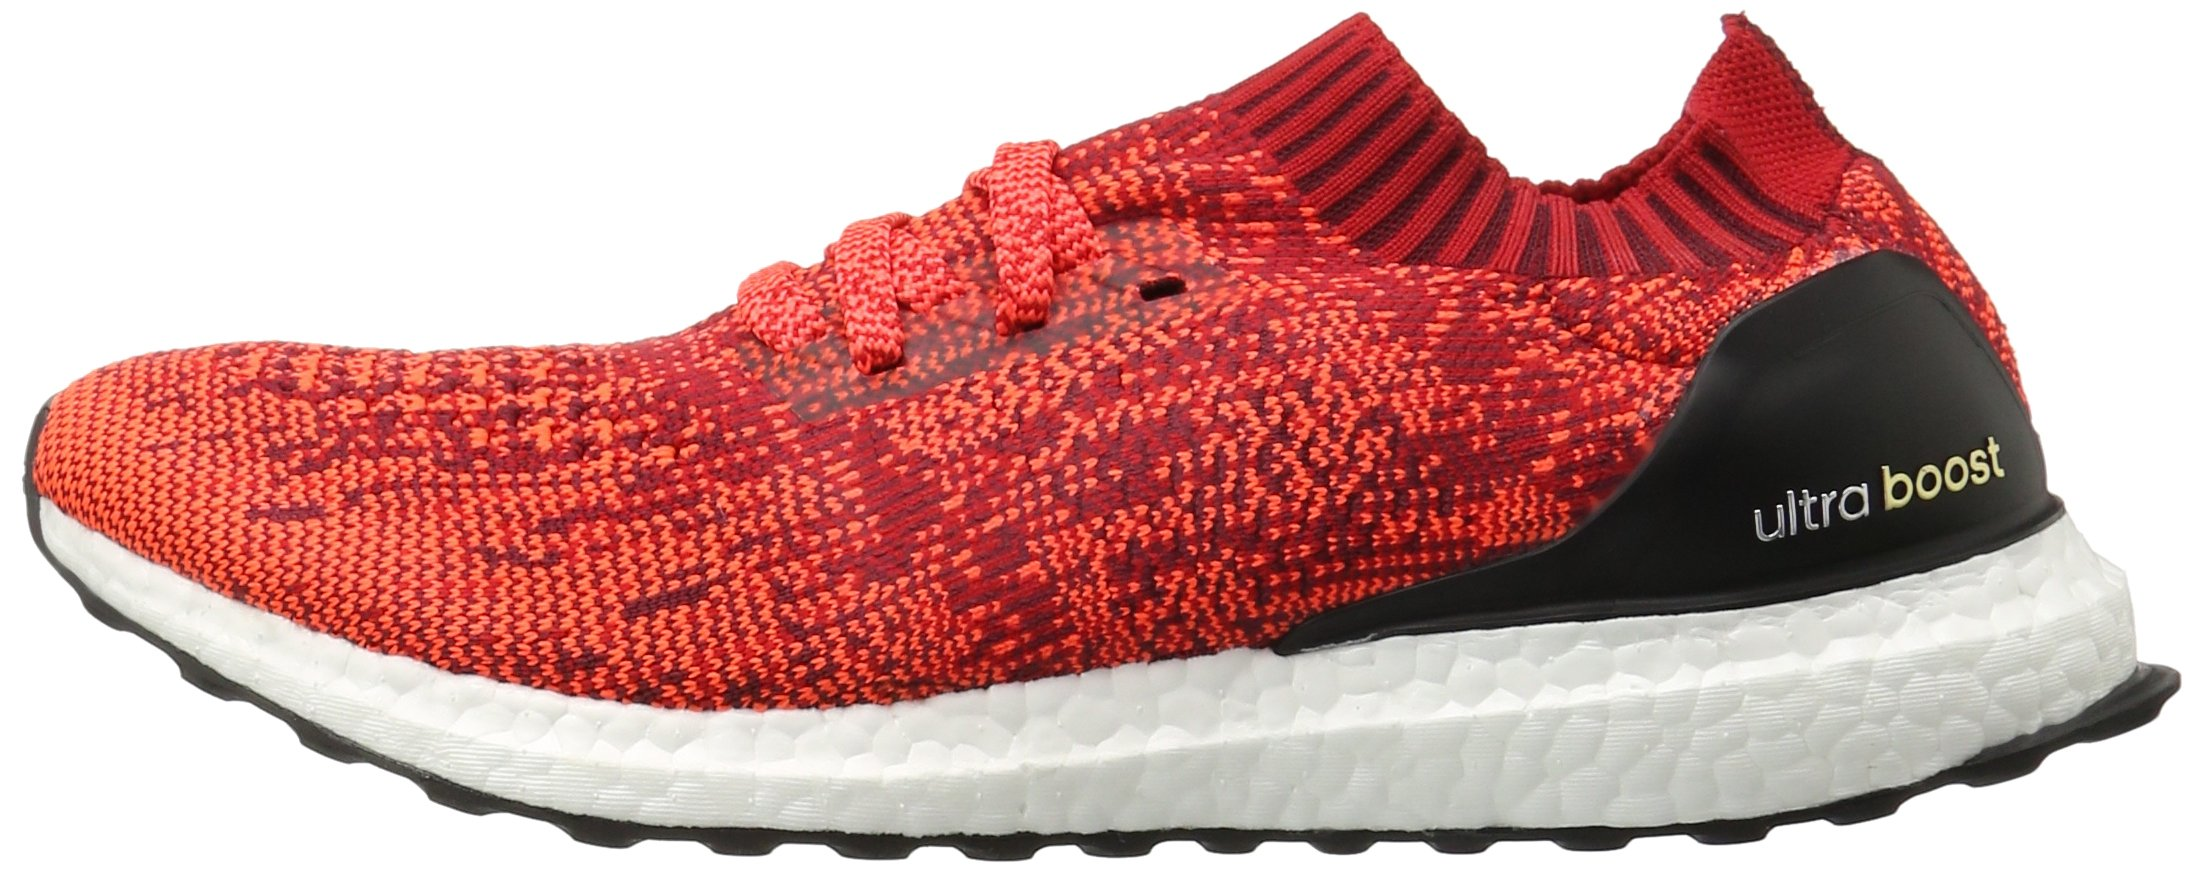 811RYGjTZyL - adidas Ultra Boost Uncaged Running Shoes